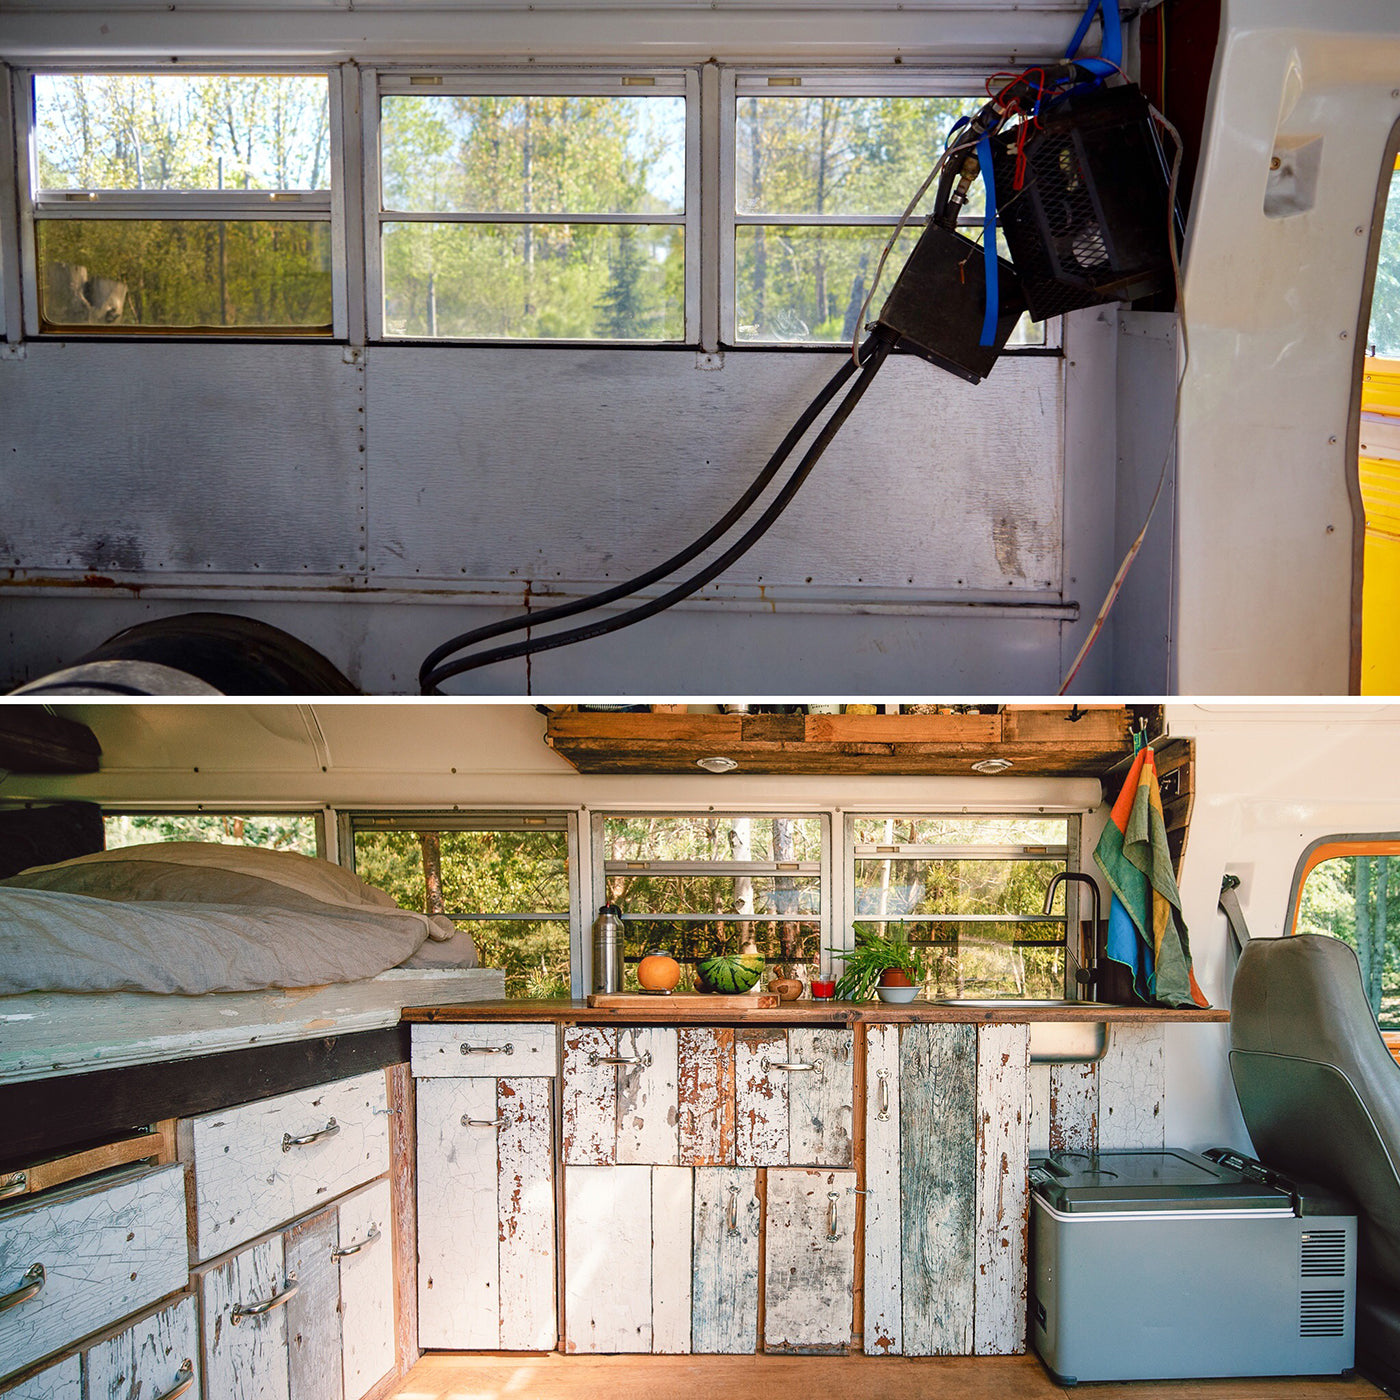 Photos of the interior of the bus–before and after the rebuild. (Photo: Kai Branss)